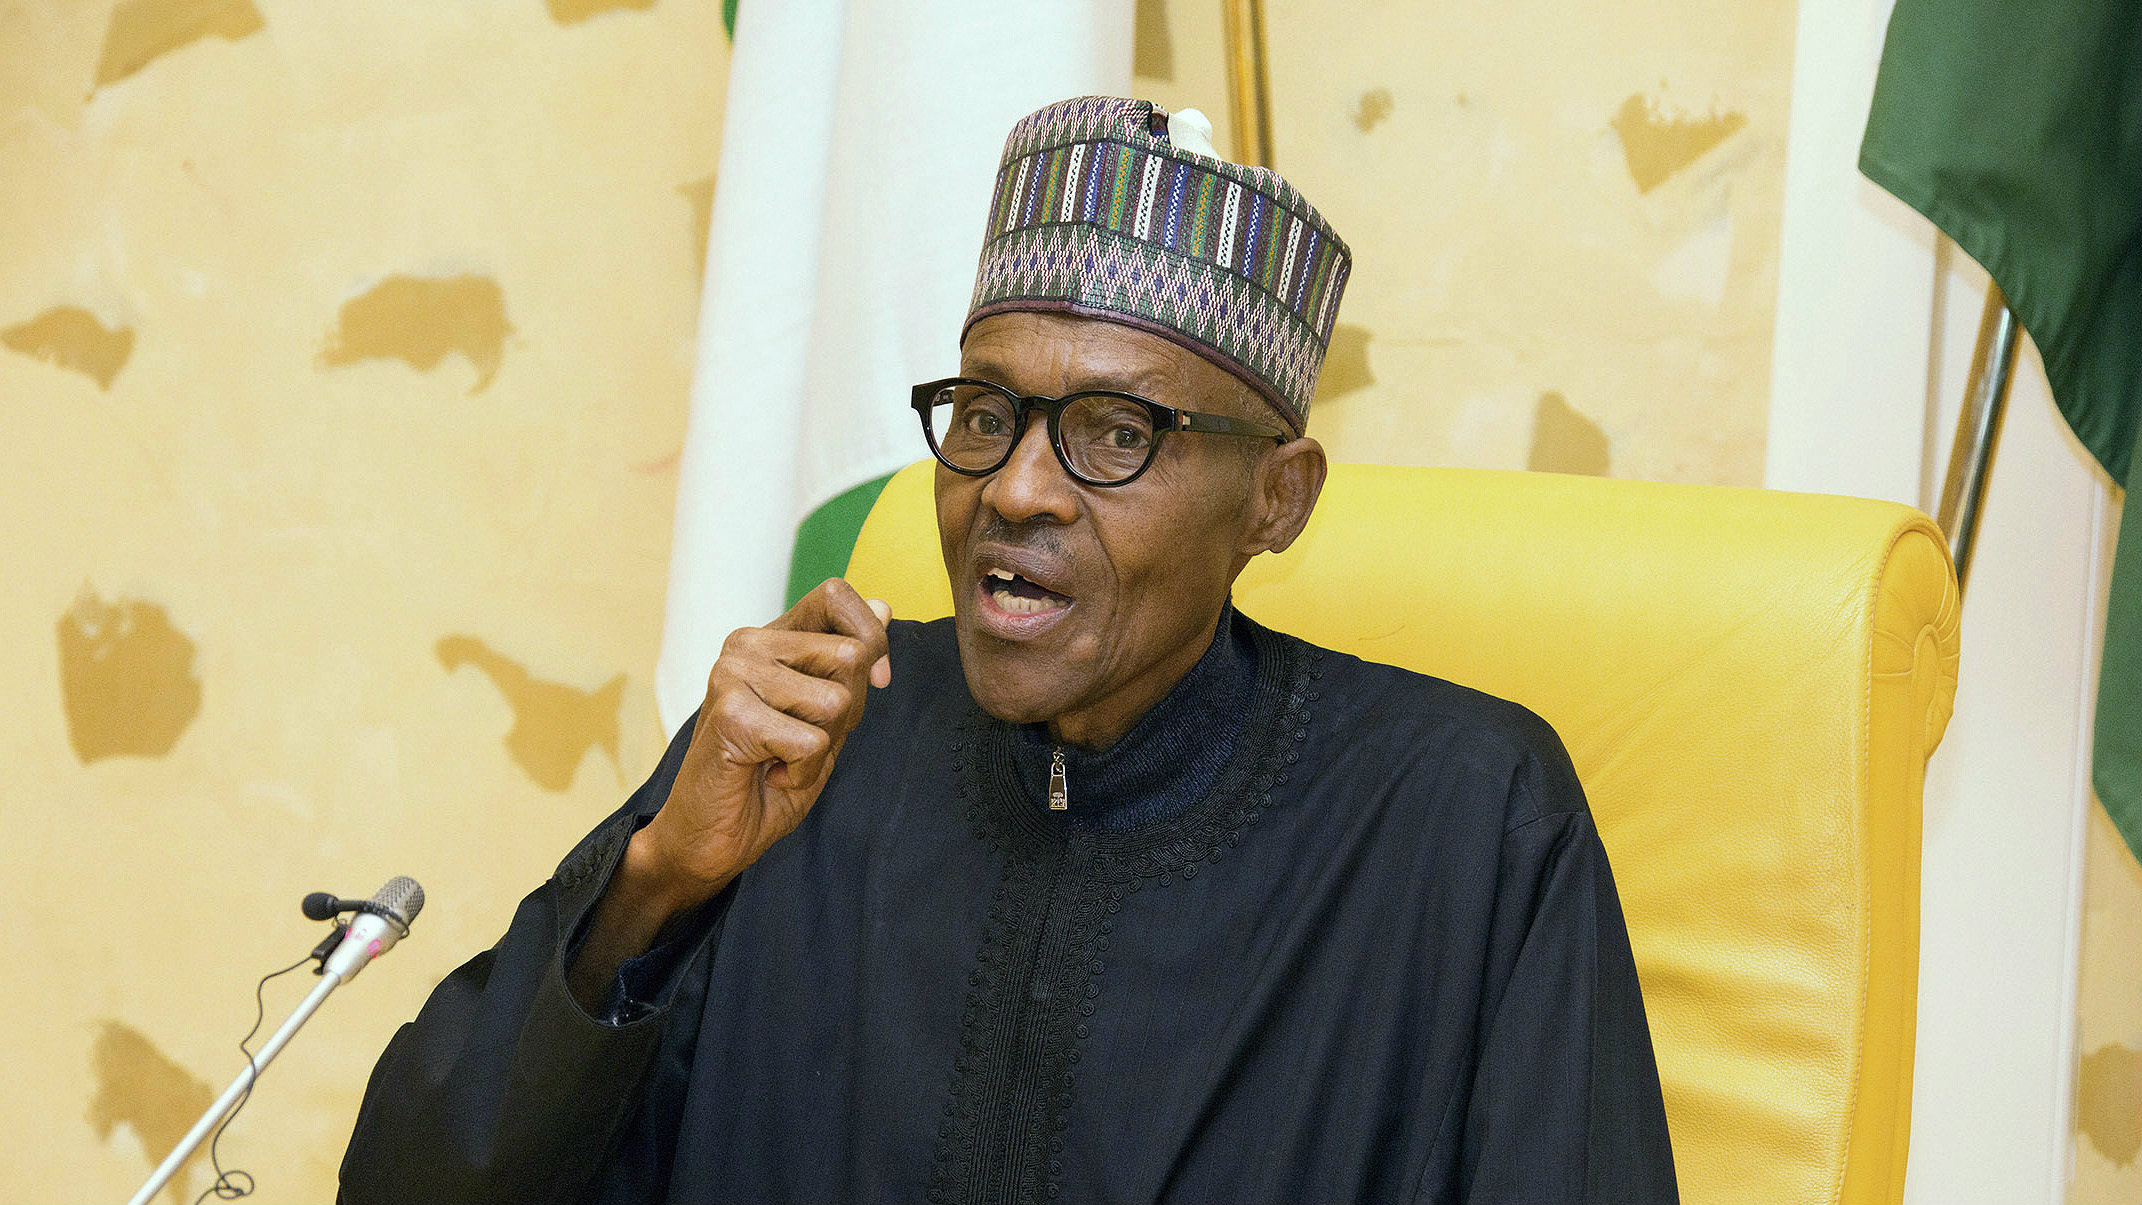 In this photo released by the Nigeria State House, Nigeria President Muhammadu Buhari, speaks at the presidential palace upon his arrival from medical vacation in Abuja, Nigeria, Friday, March 10, 2017. Nigerian President Muhammadu Buhari returned to the country on Friday after a medical leave of a month and a half that raised questions about his health and some calls for his replacement, but he made clear that whatever was ailing him was not yet over.